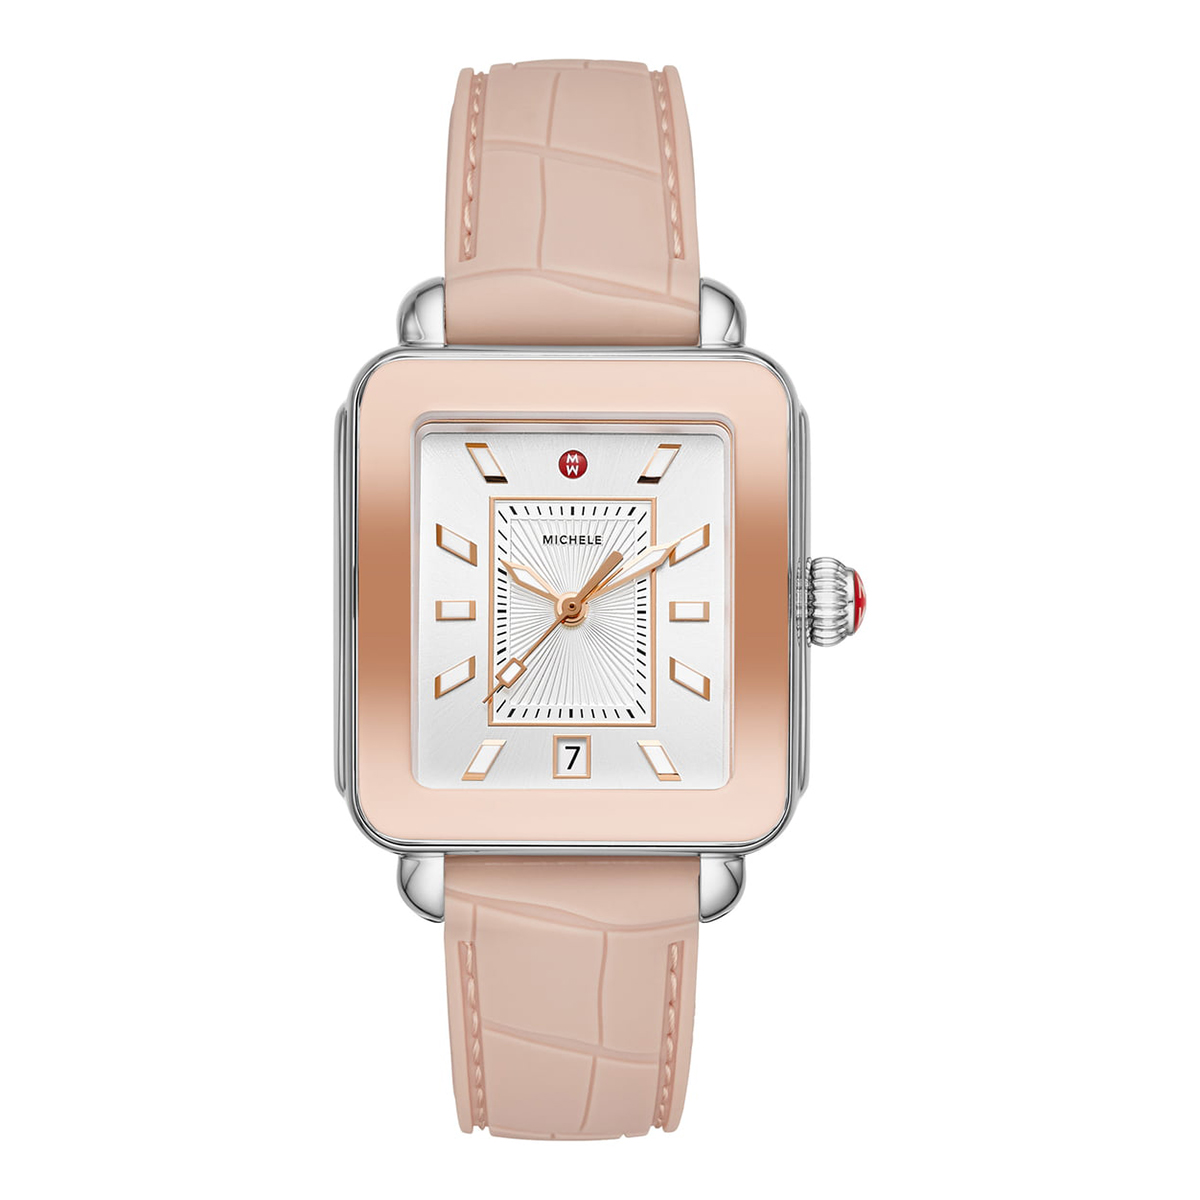 Michele Deco Sport Watch